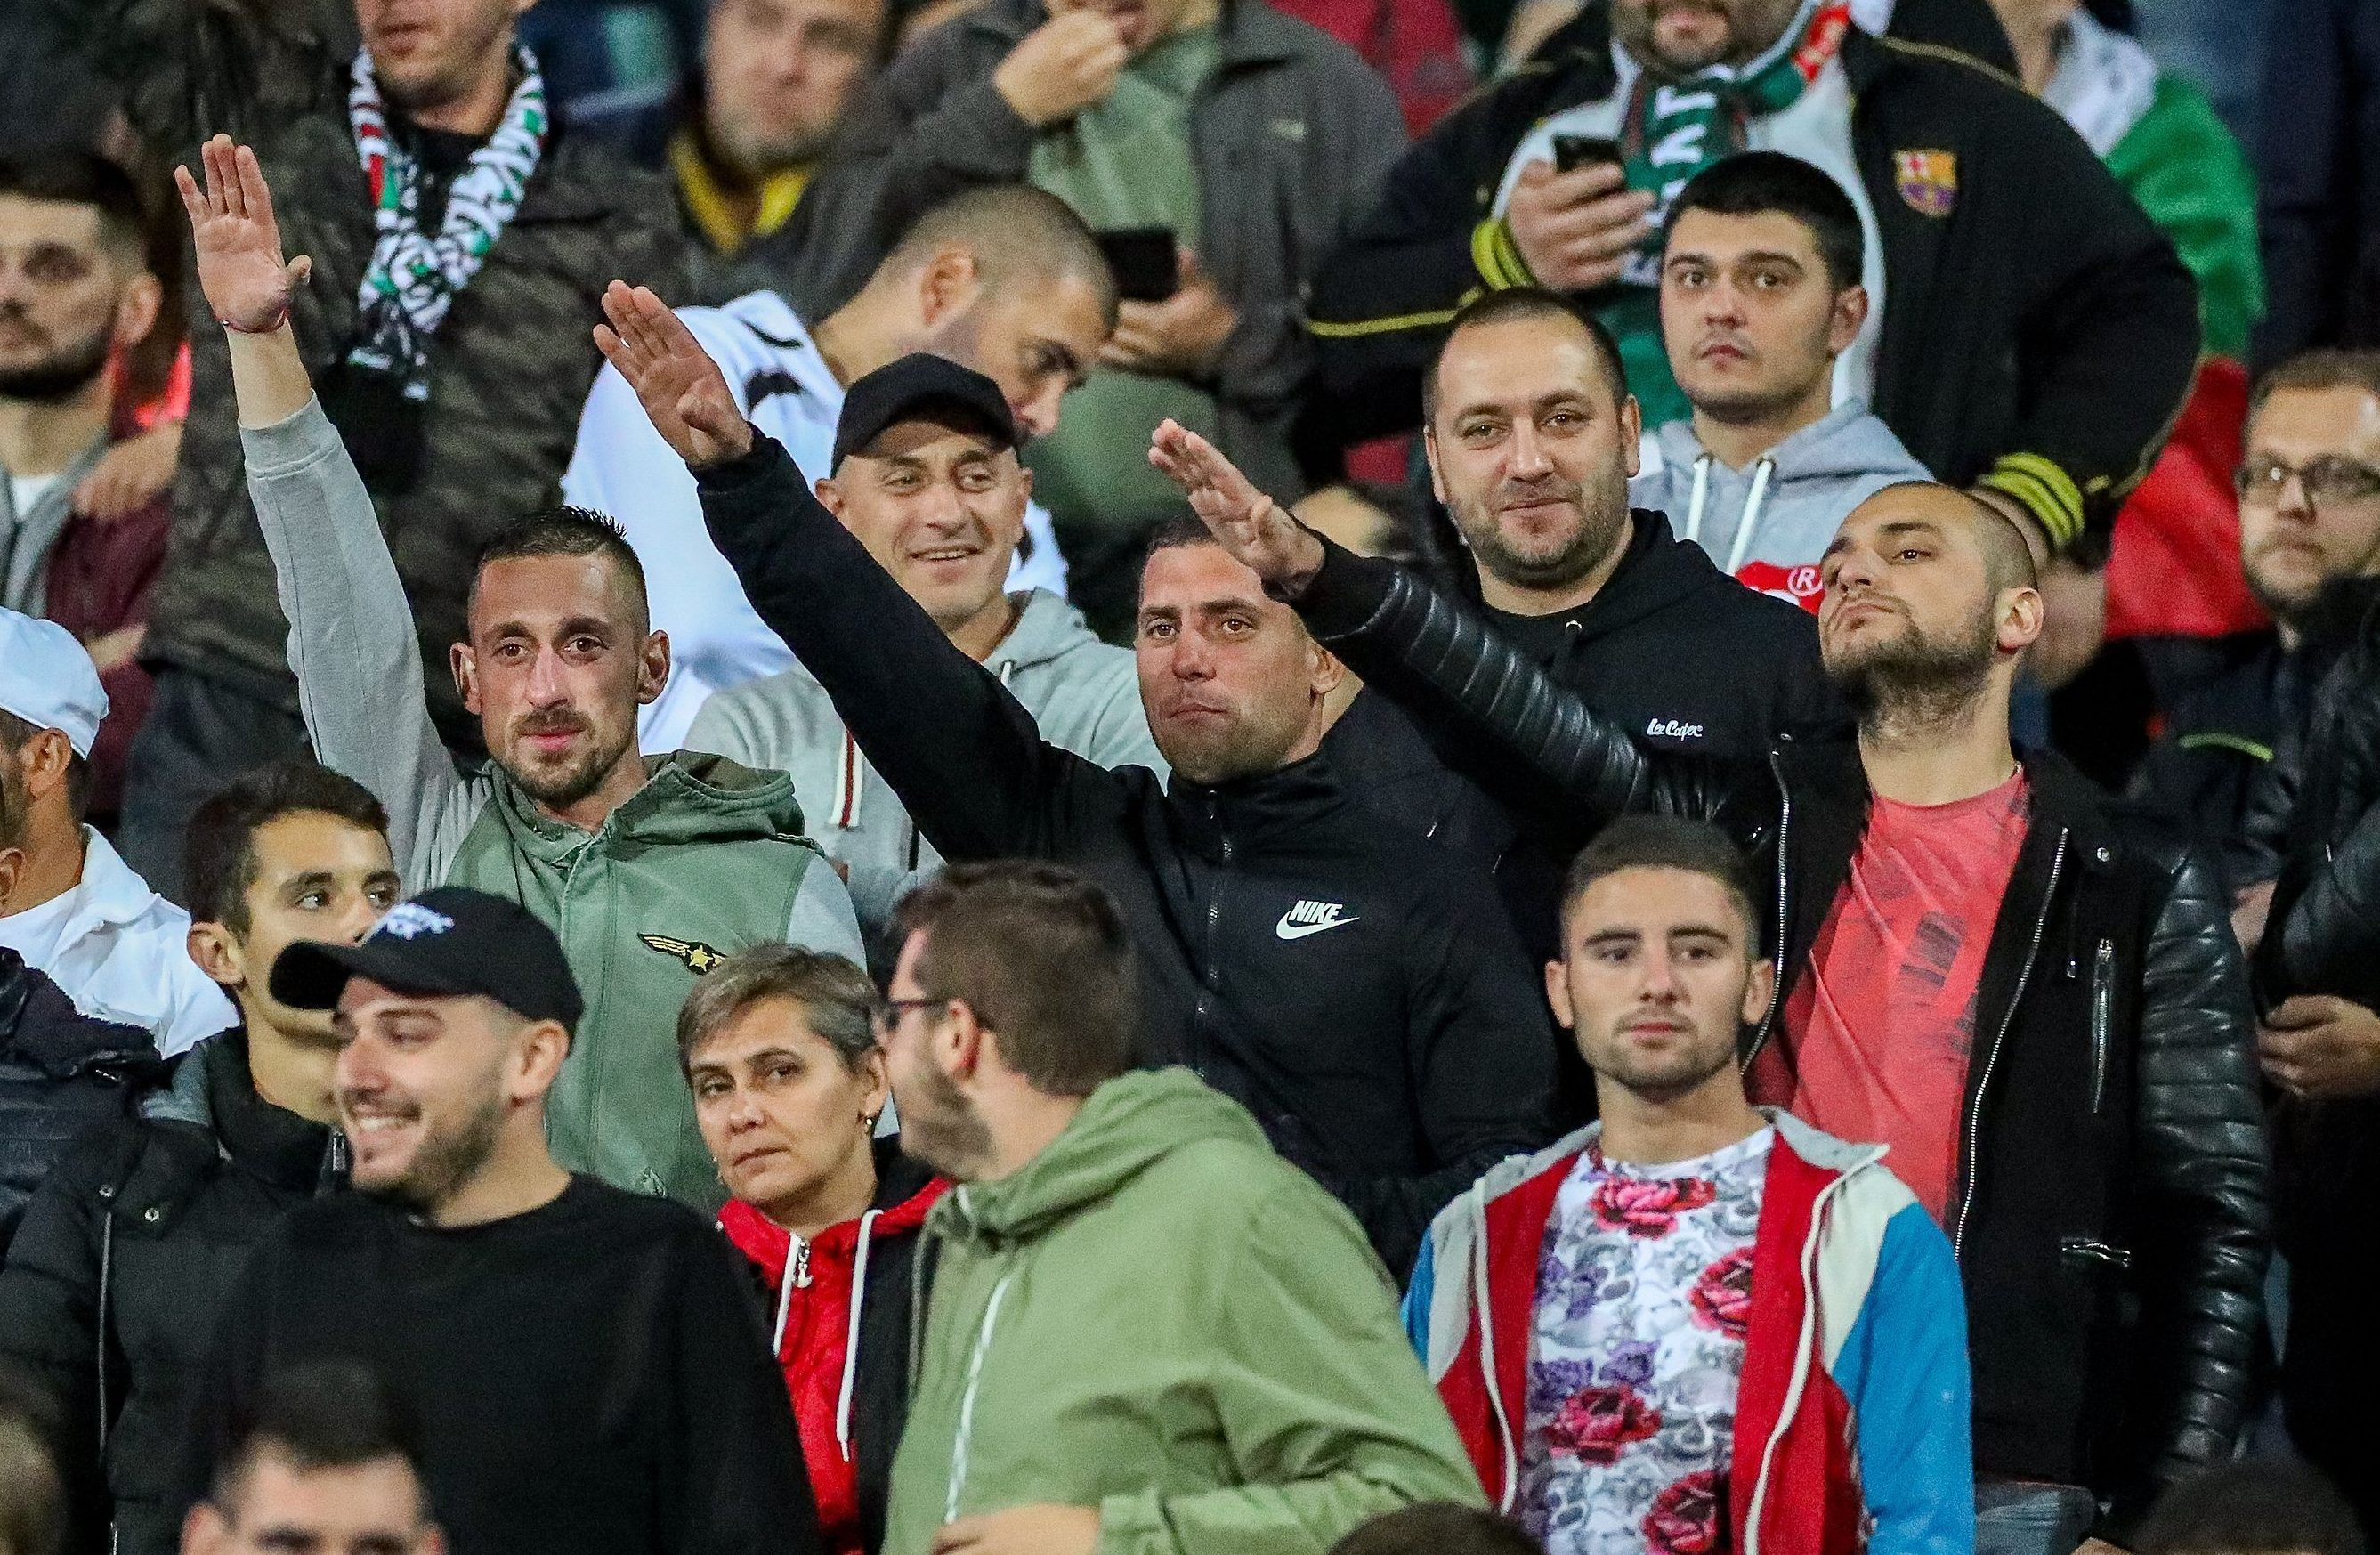 A group of Bulgarian fans could be seen doing the Nazi salute inside the ground